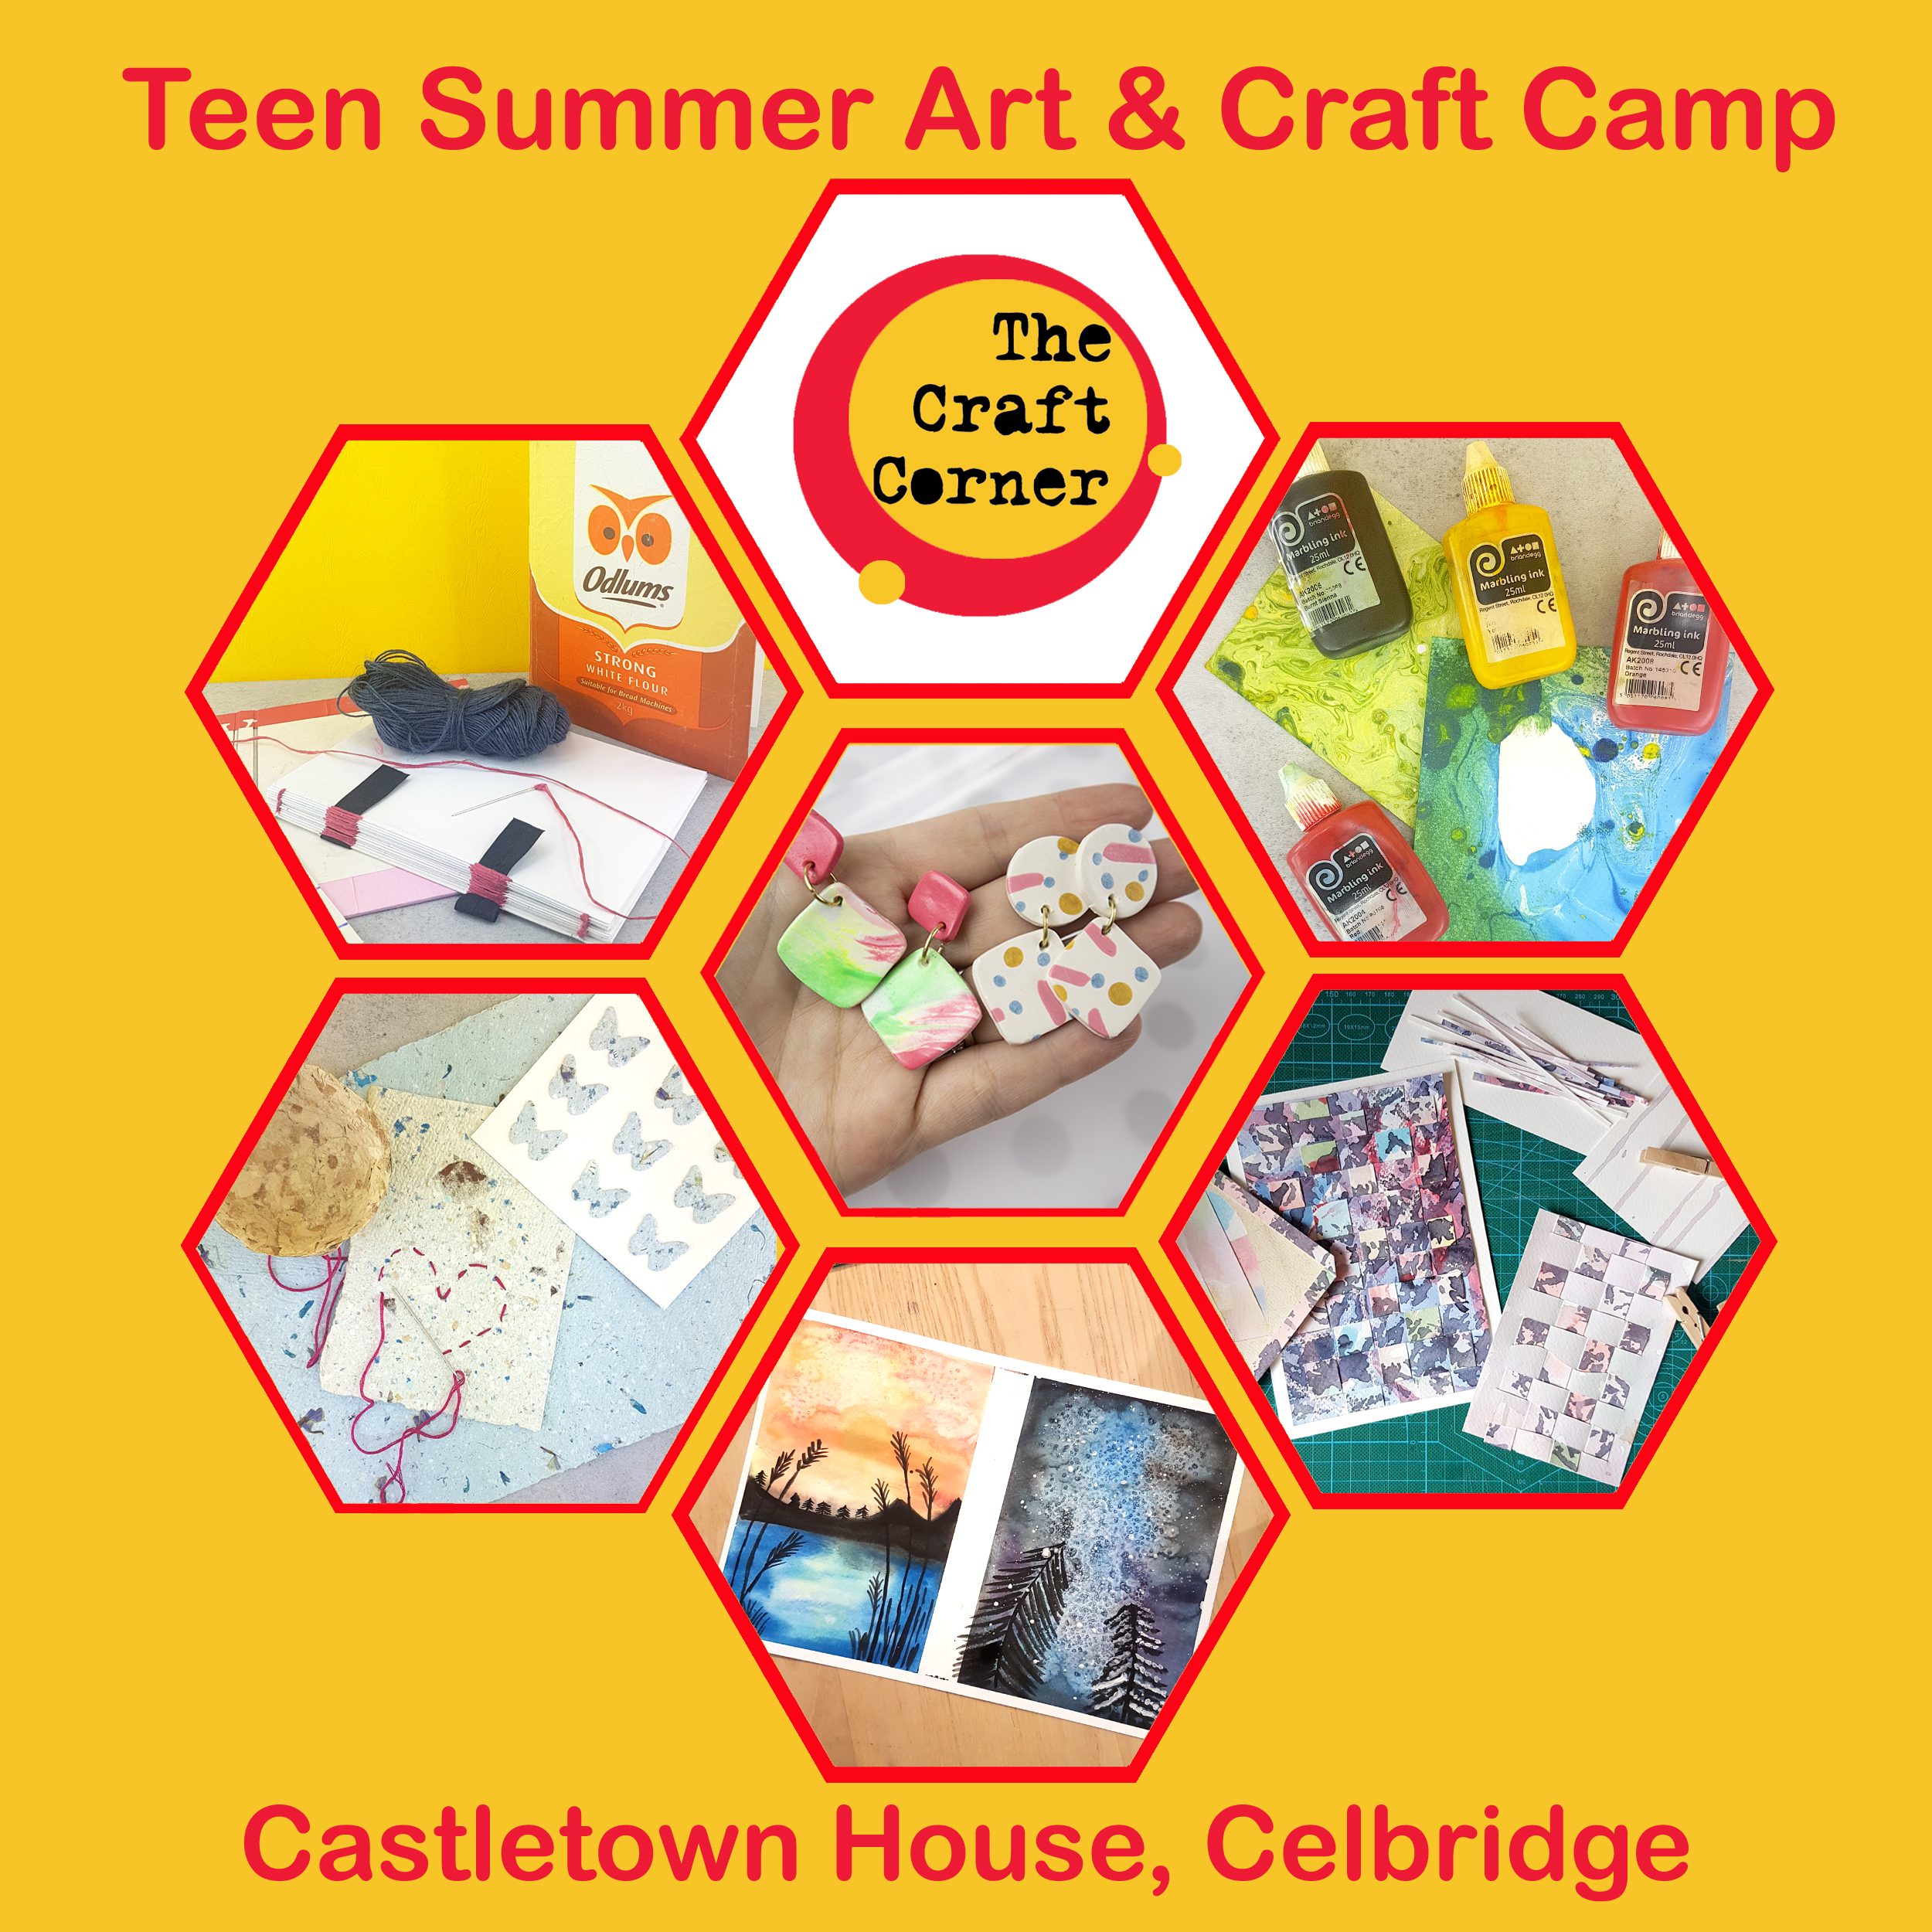 teen camp for age 12 to 16 in celbridge this August